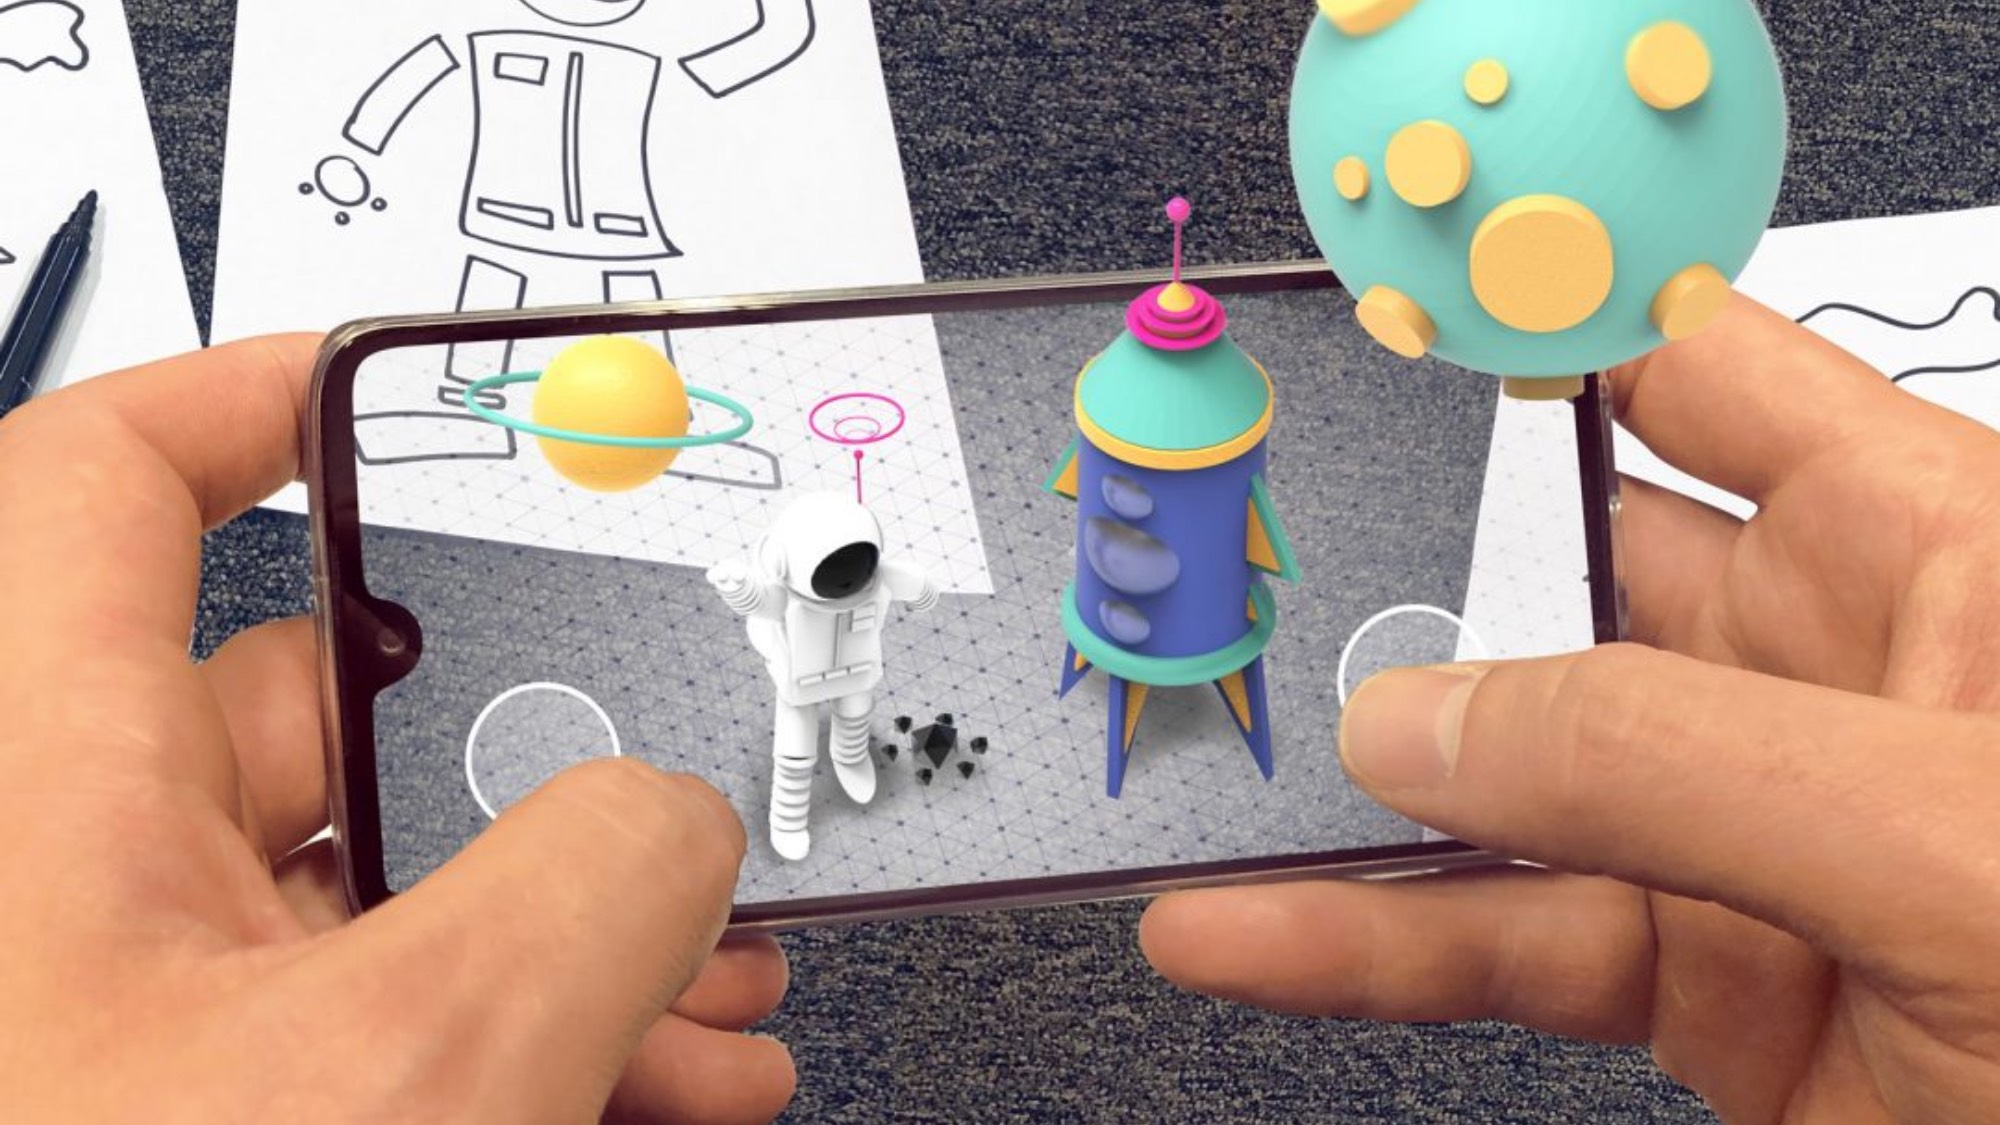 Augmented reality figures pop up through a mobile phone screen